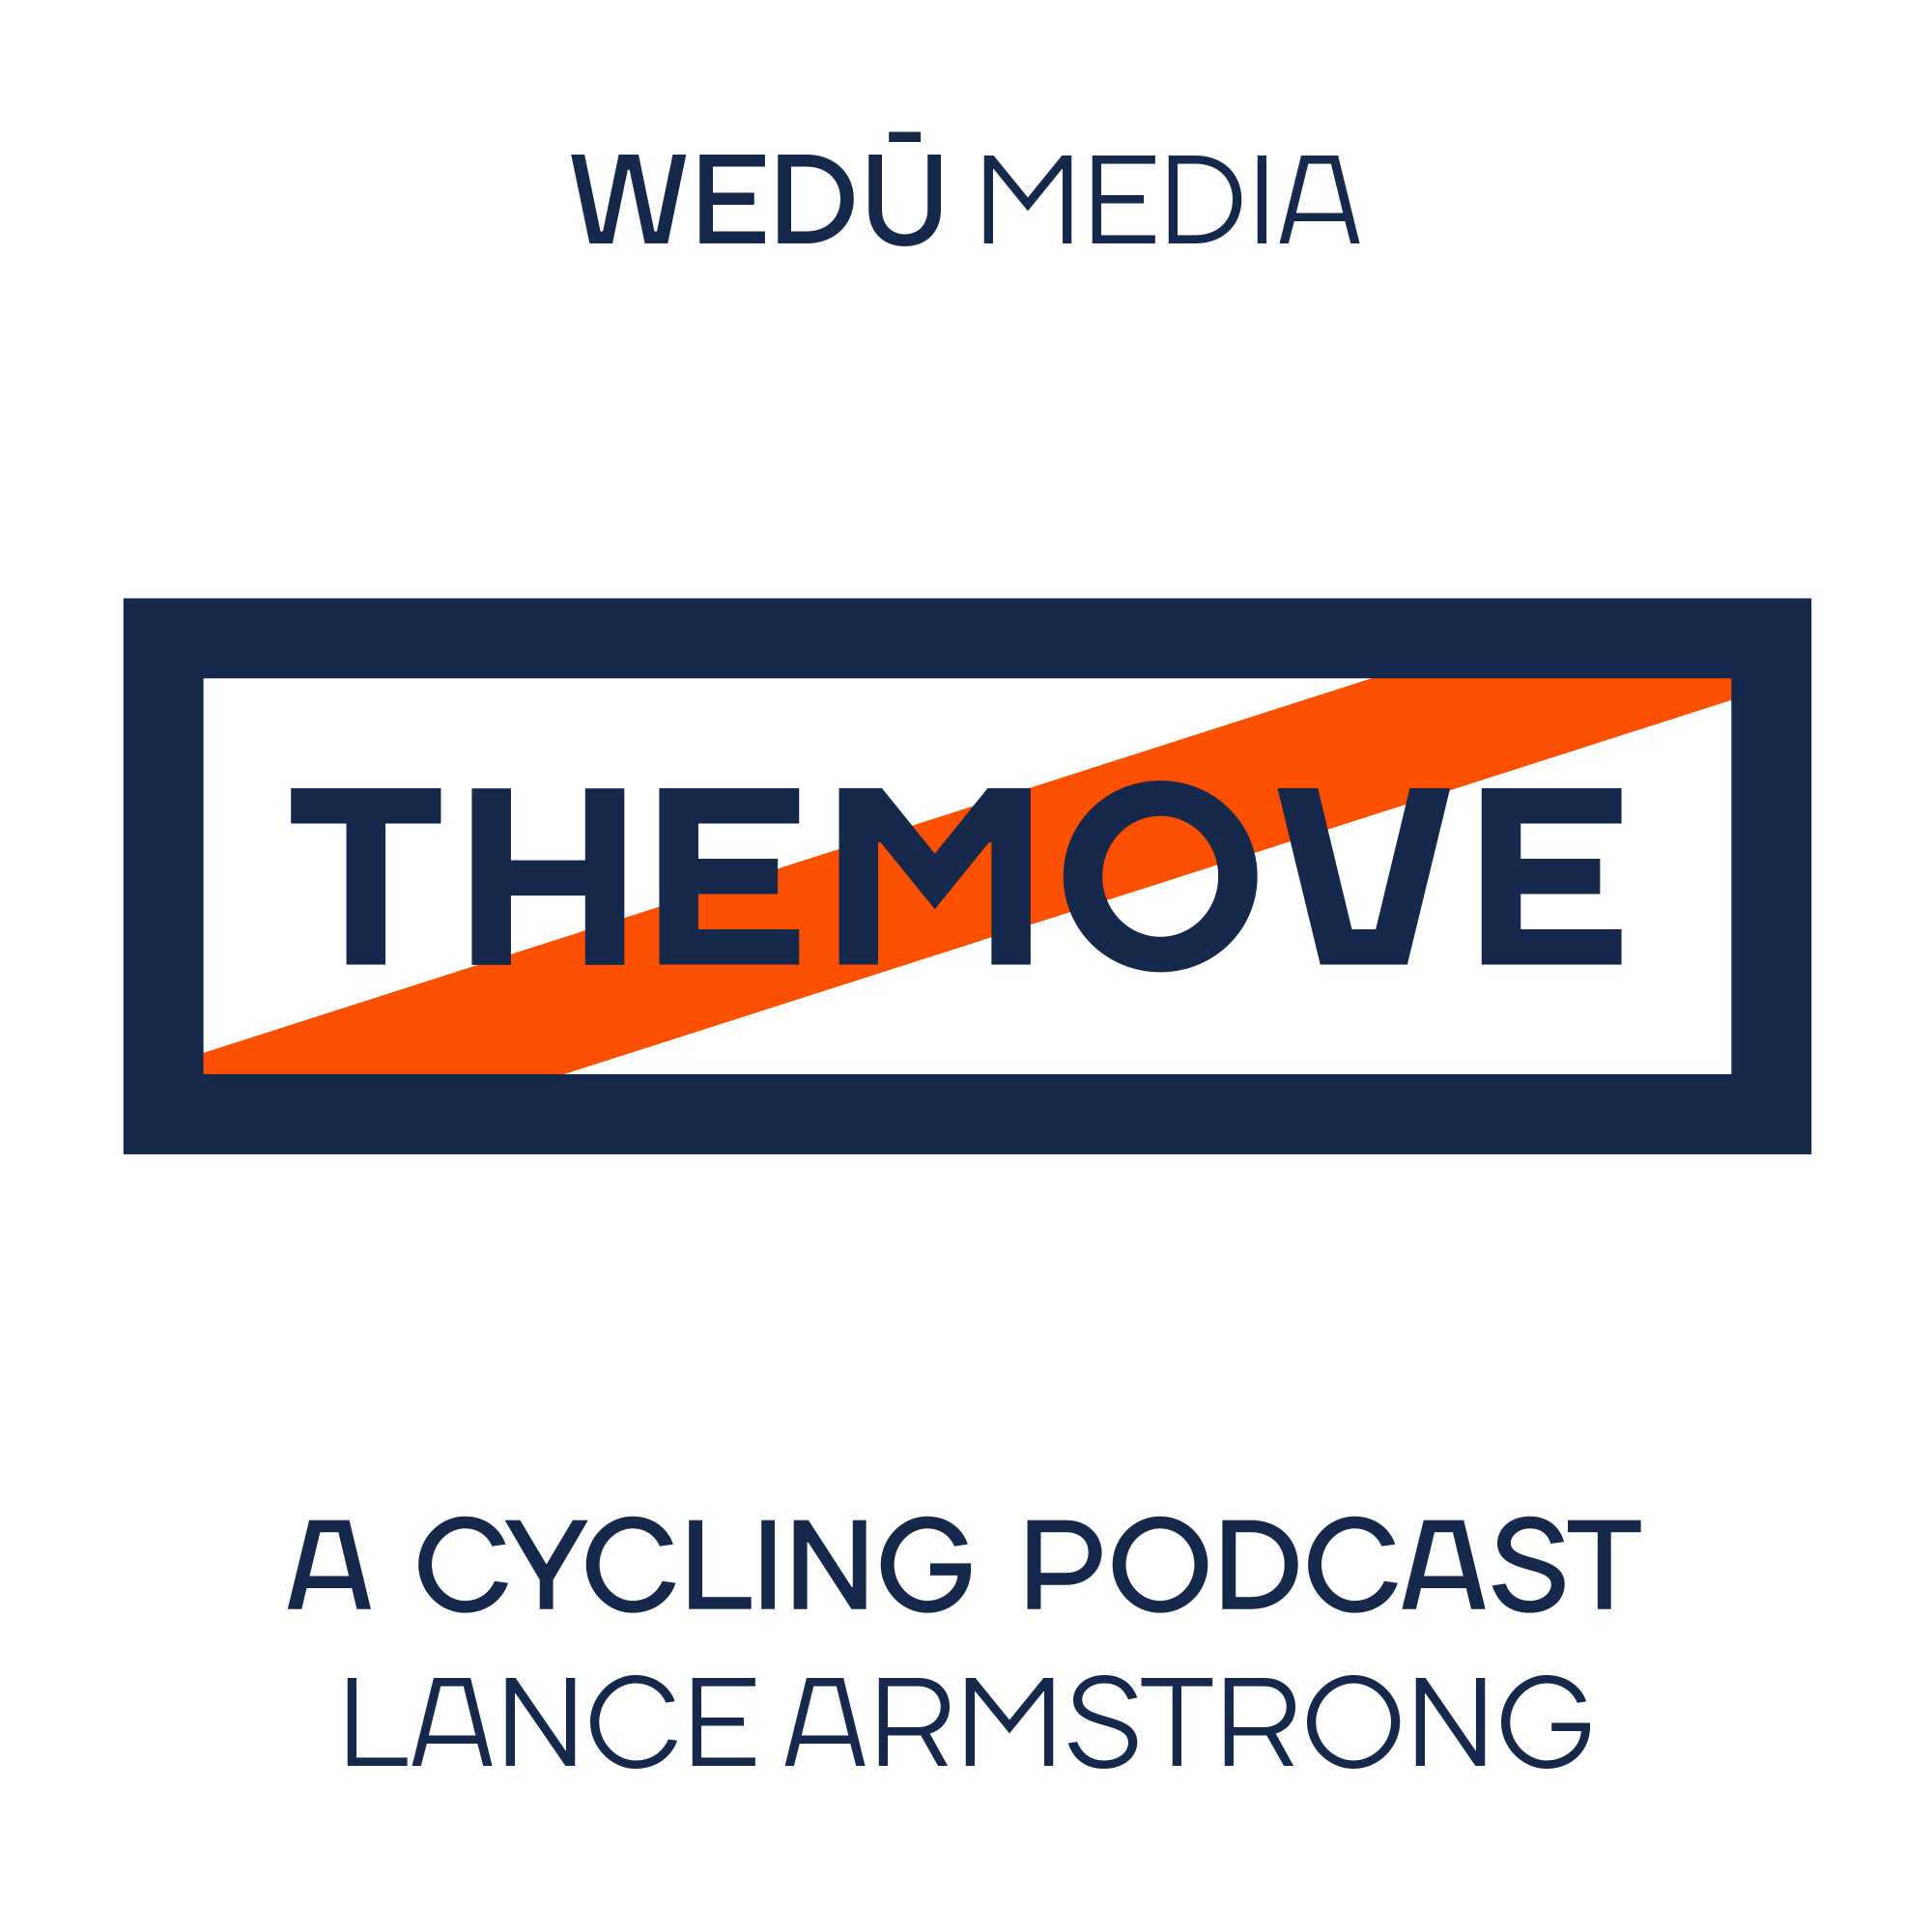 Themove By Lance Armstrong On Apple Podcasts Win Tutup